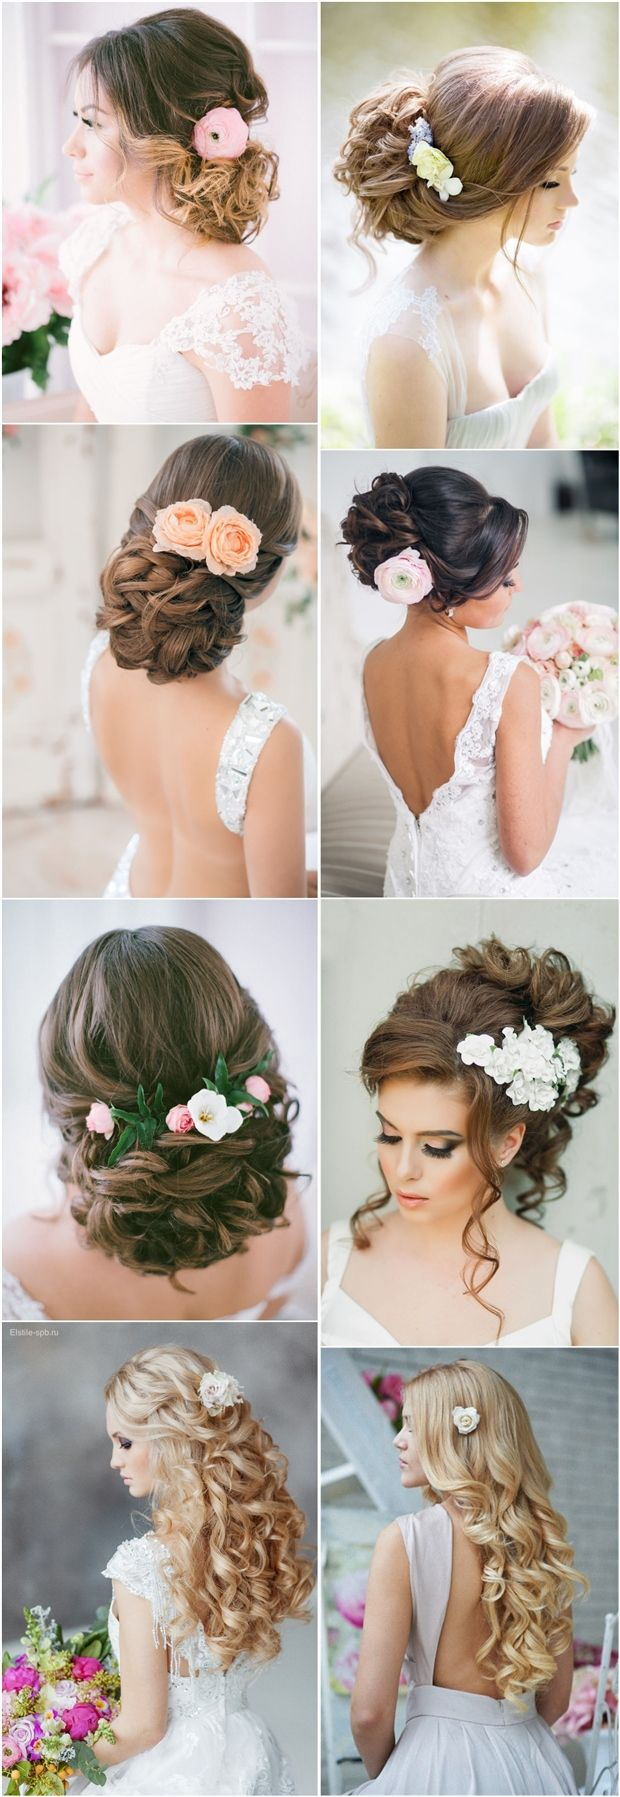 www.deerpearlflowers.com wp-content uploads 2015 09 long-wedding-hairstyles-updos-with-flowers.jpg